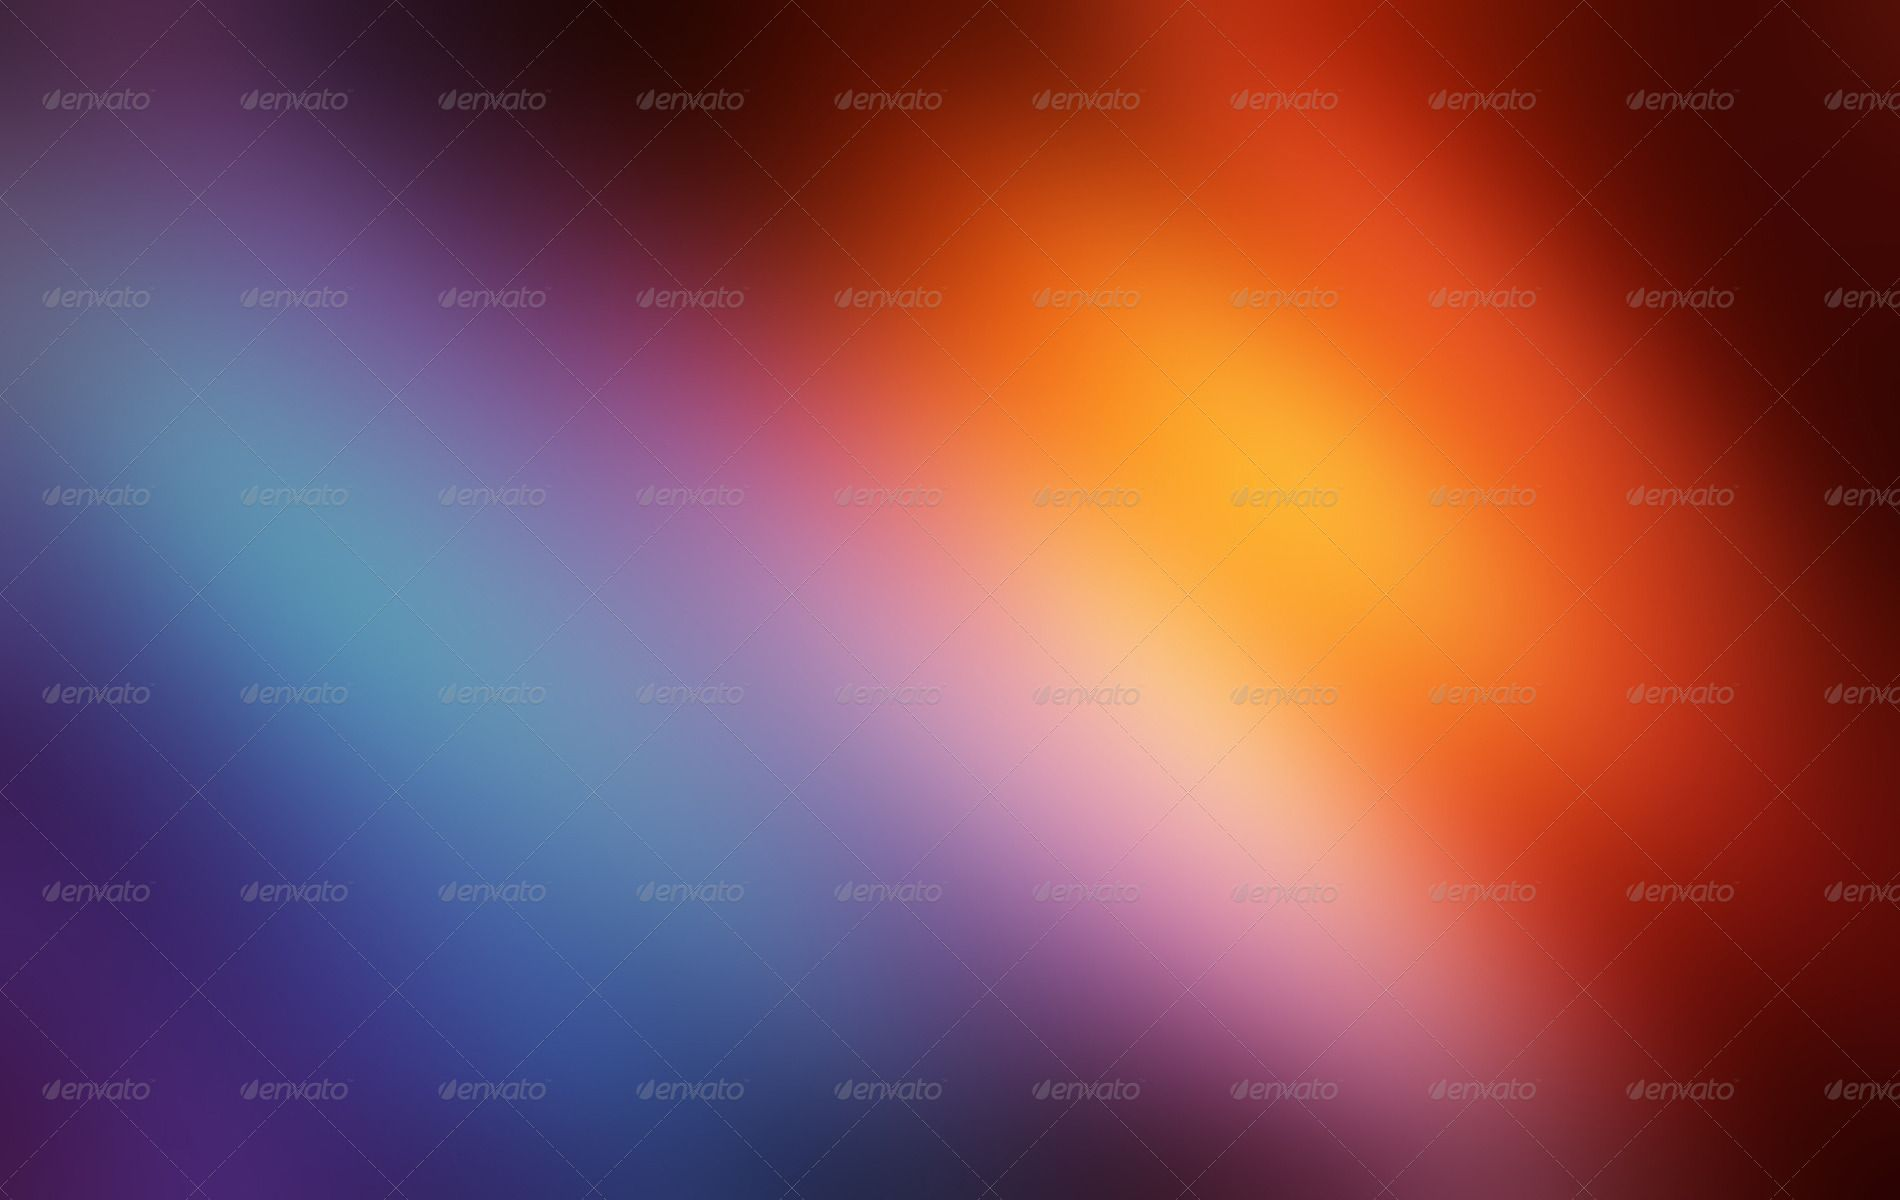 Coloful Blurred HD Backgrounds (With images) Hd